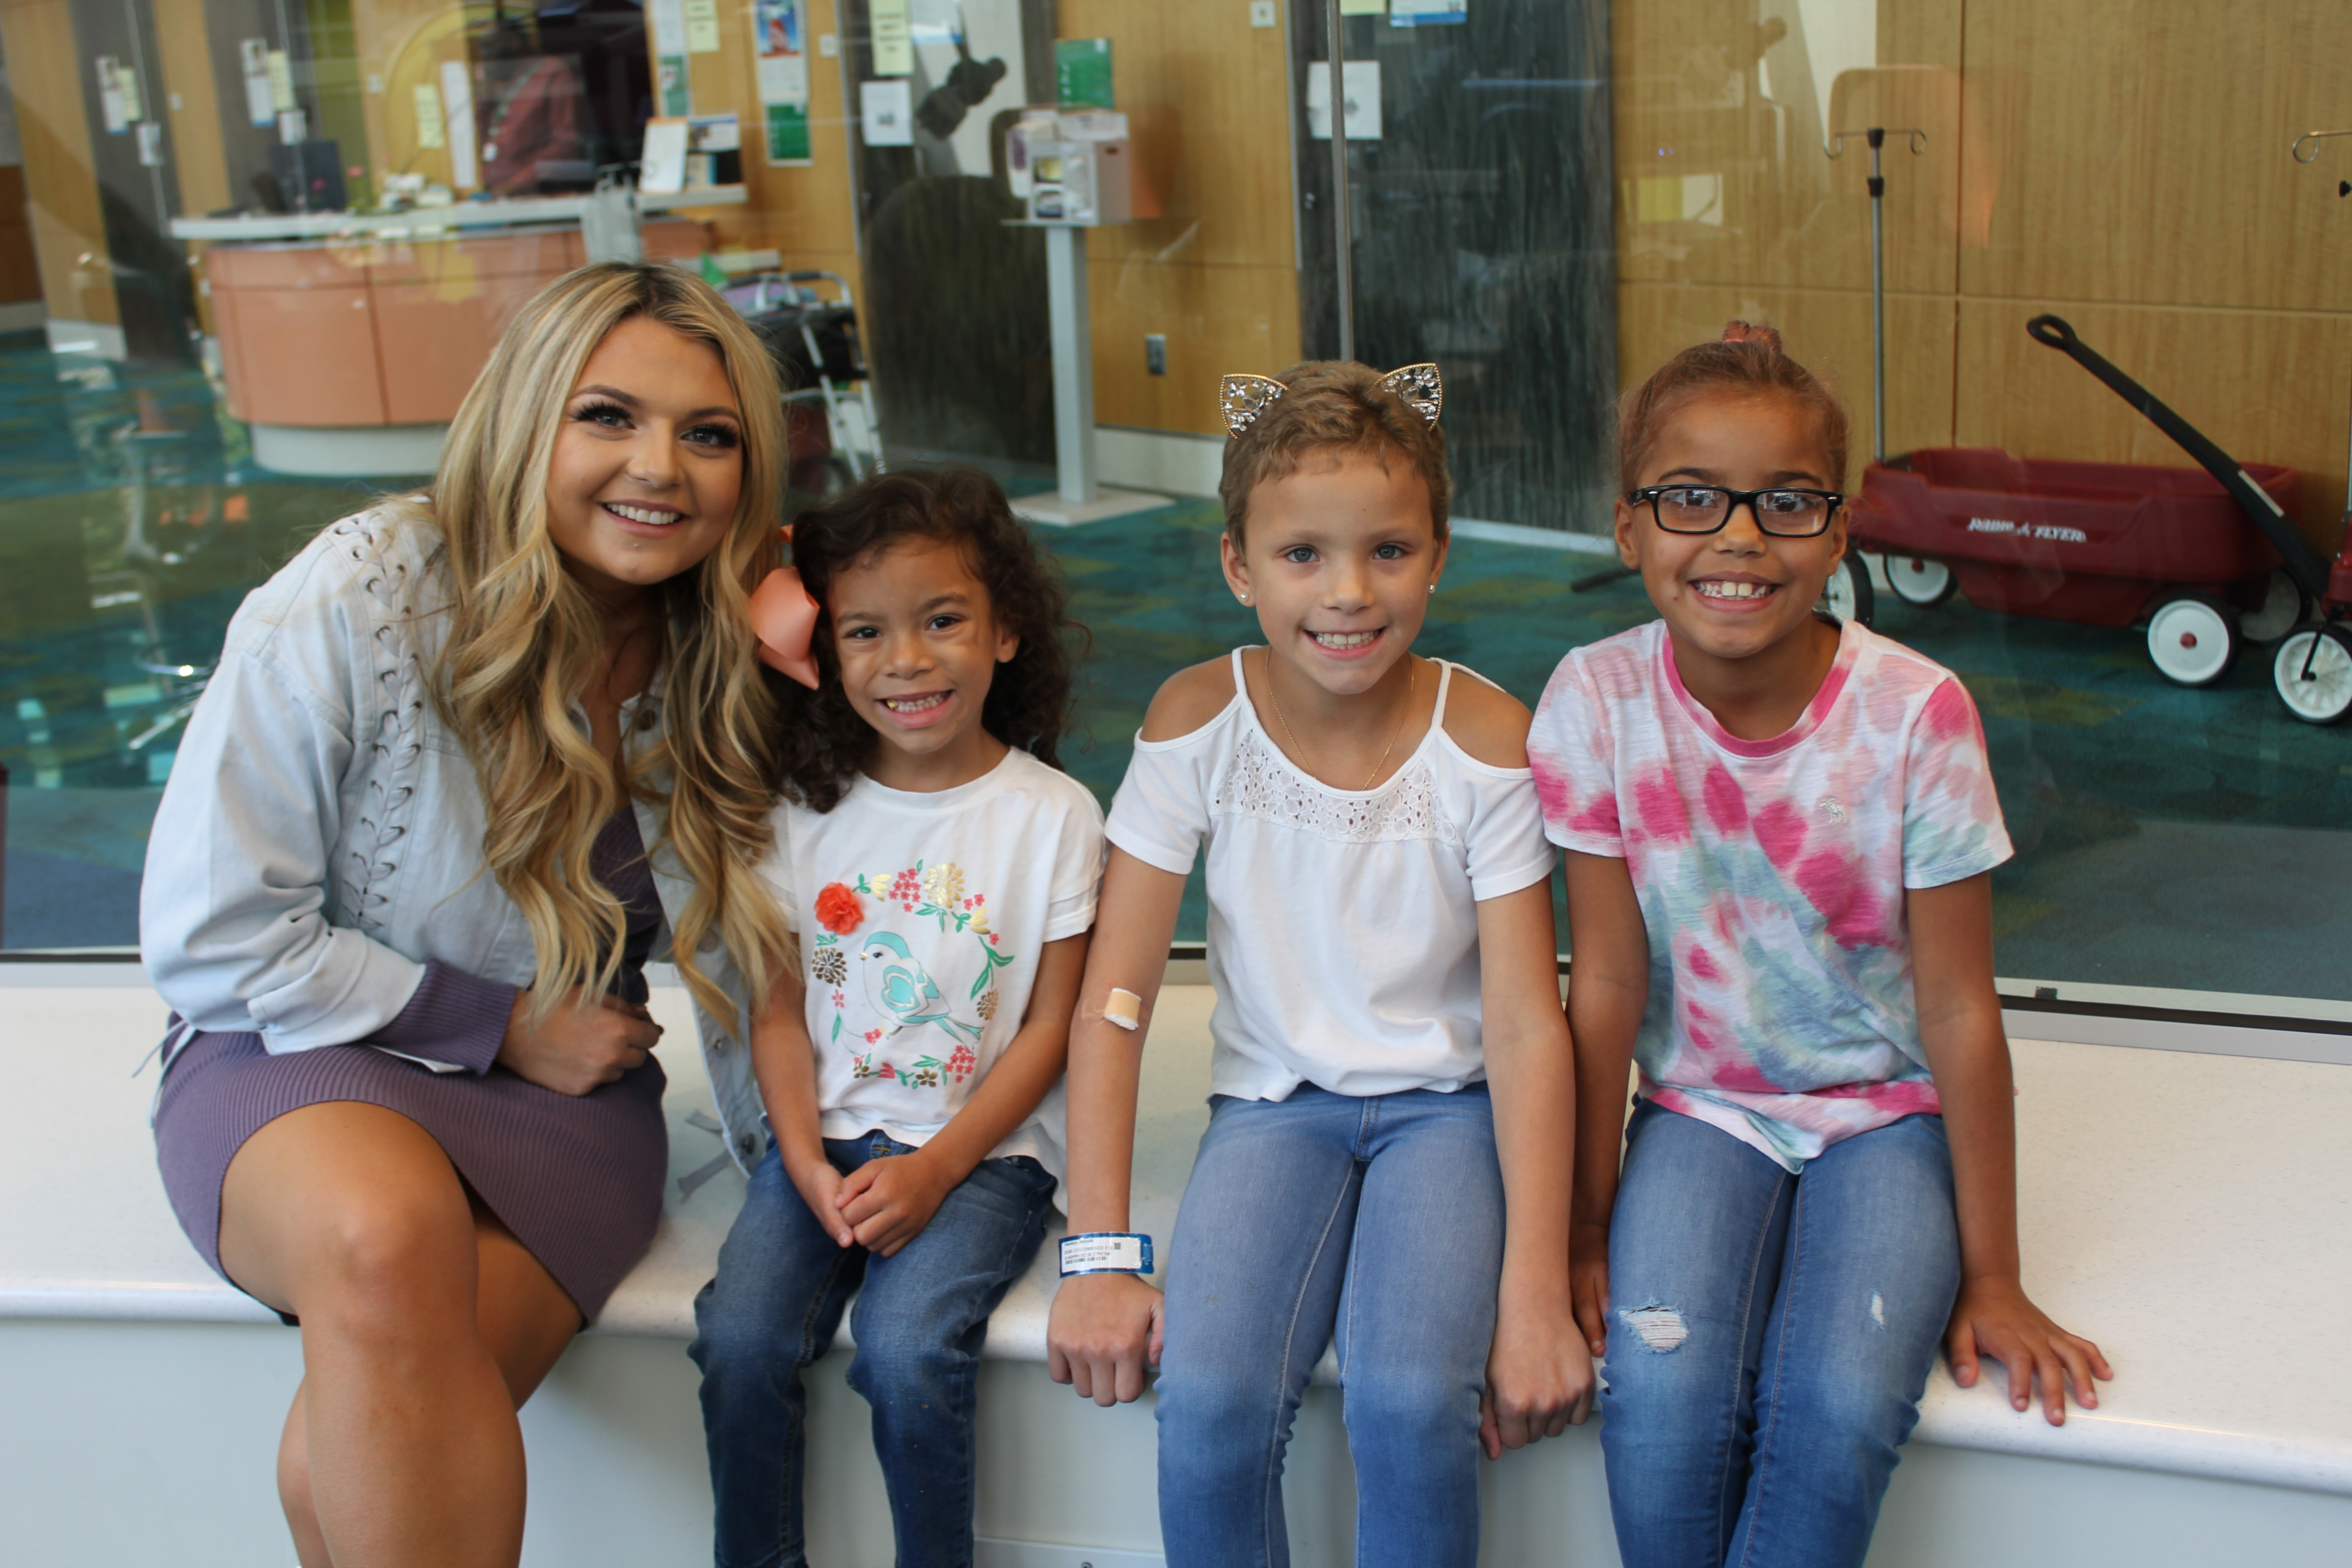 Taylor Grey Makes a Special Visit to Children's ATL